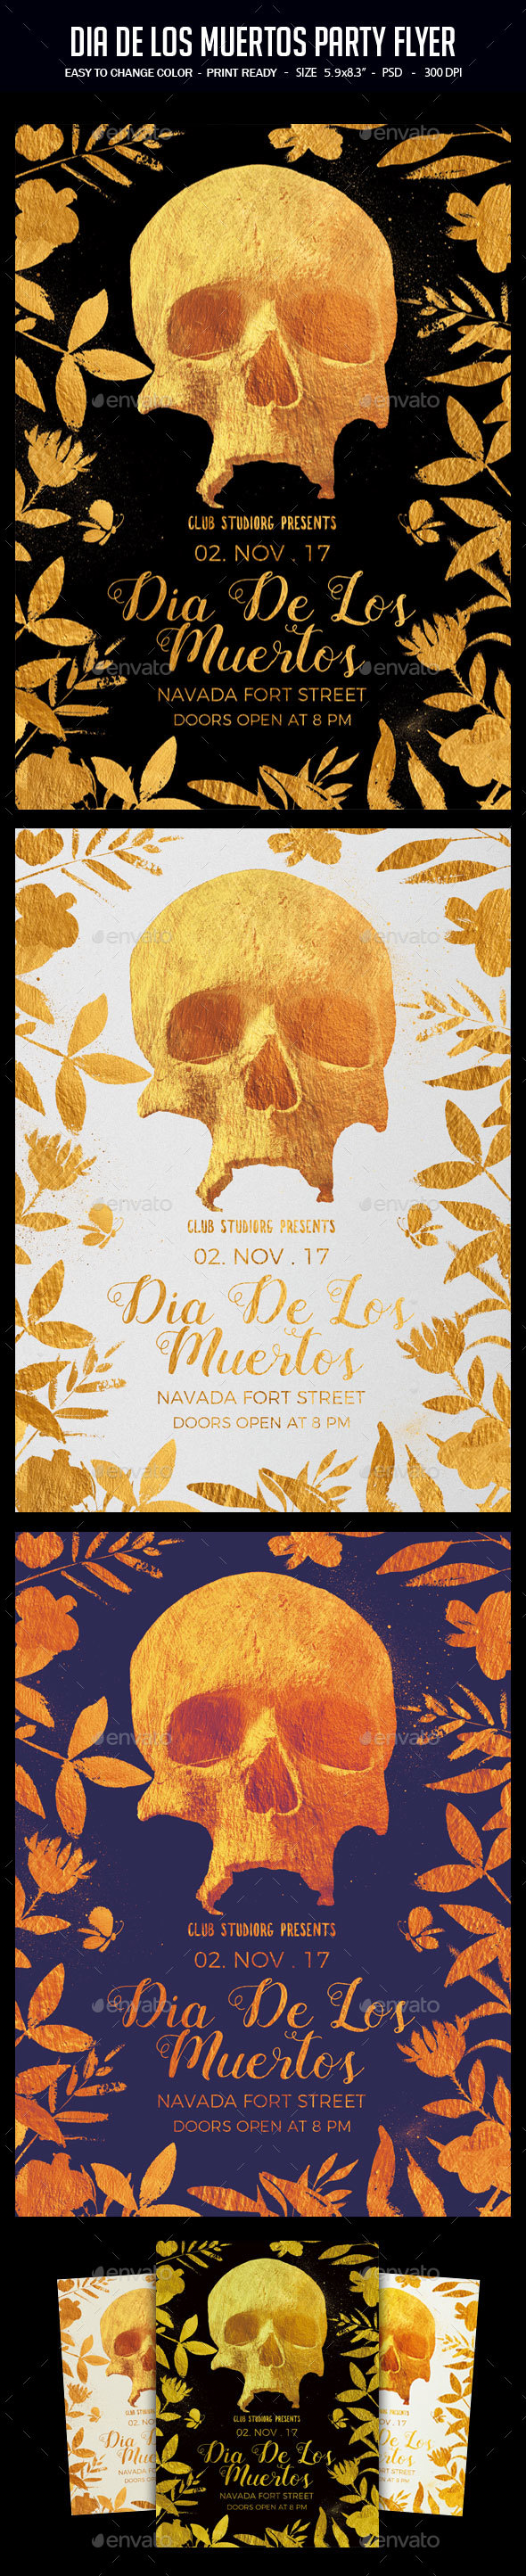 Dia De Los Muertos Party Flyer - Clubs & Parties Events